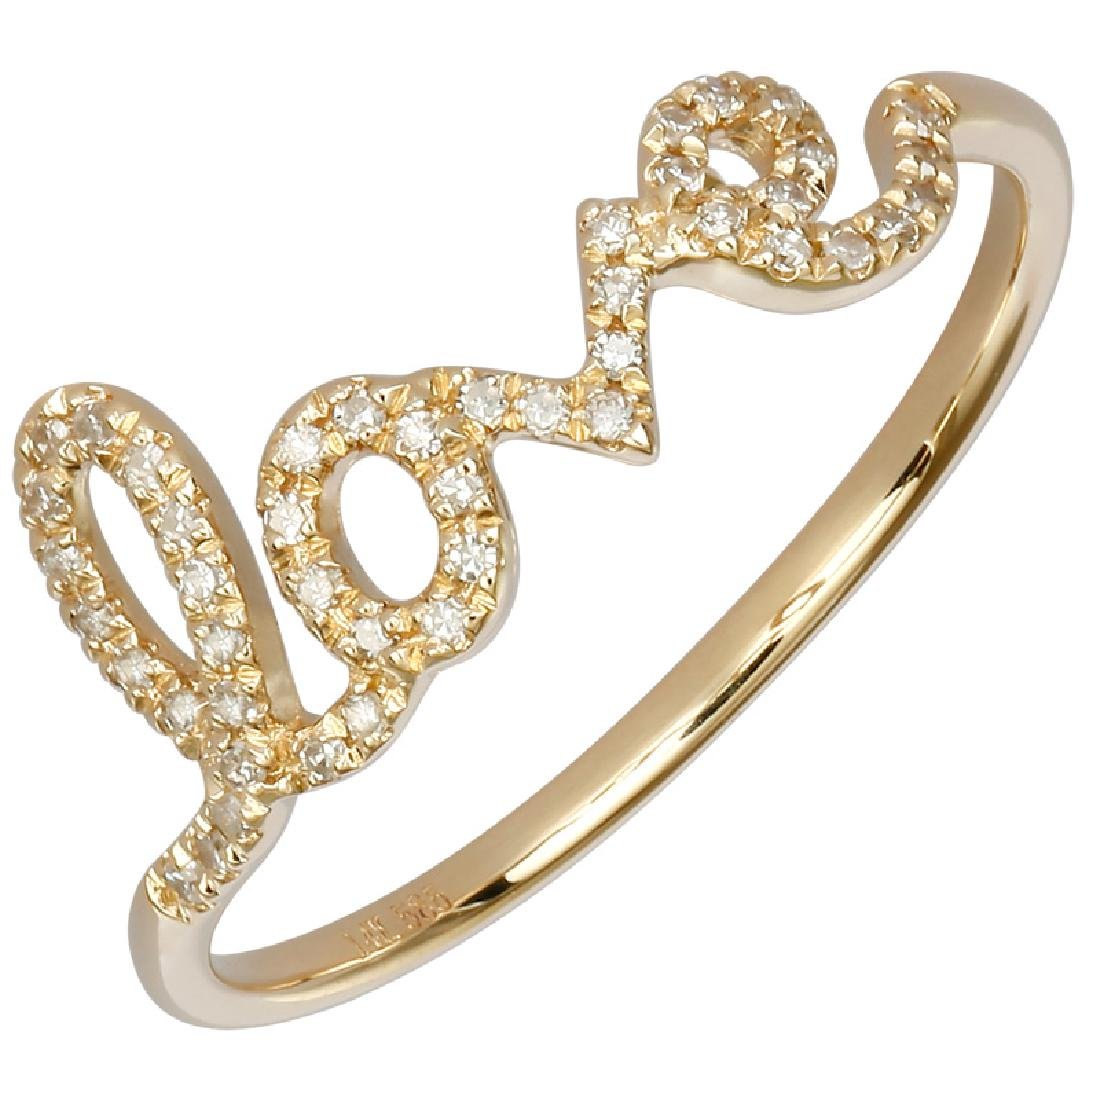 14KT Yellow Gold Women's Diamond Ring